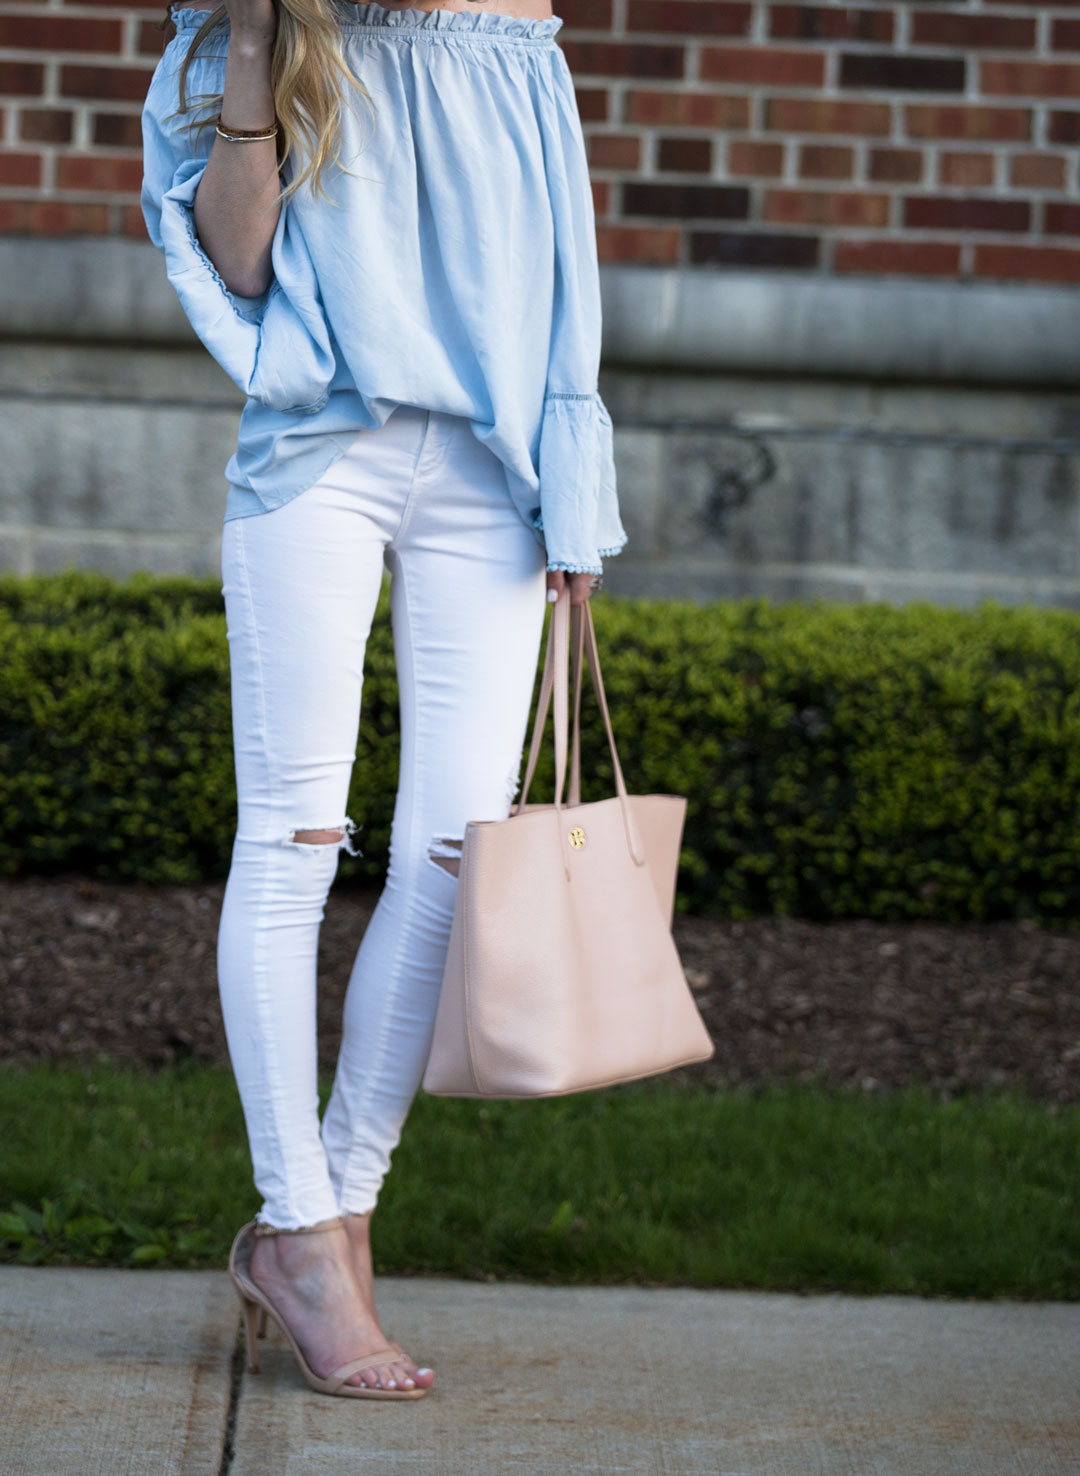 the perfect casual outfit for spring